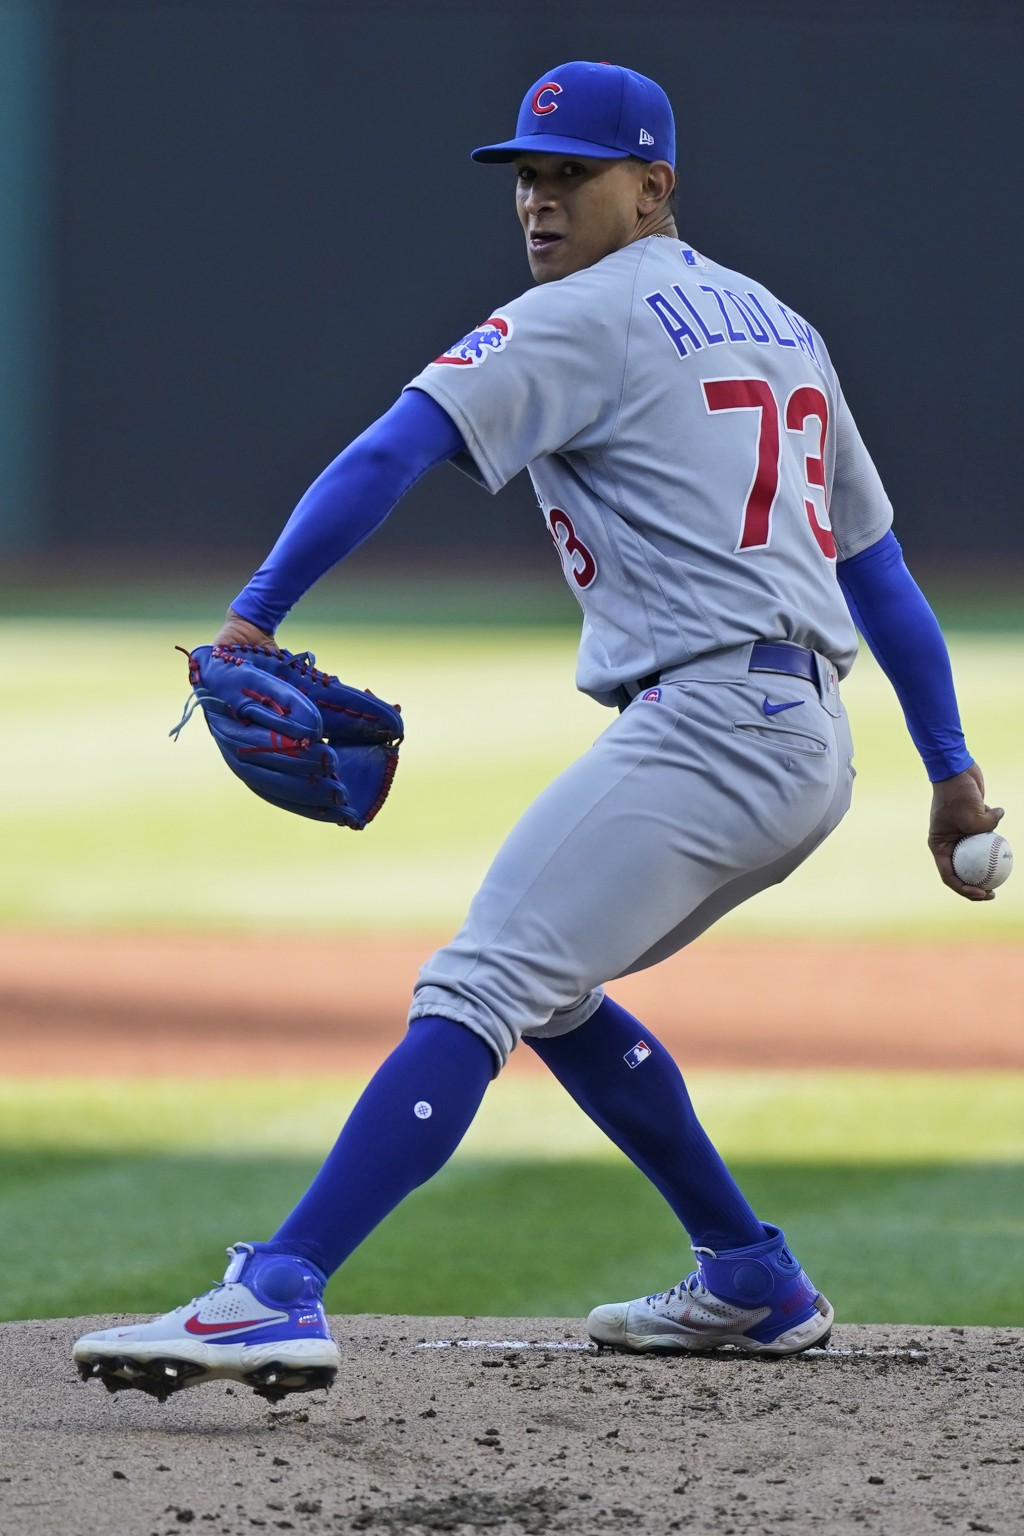 Chicago Cubs starting pitcher Adbert Alzolay delivers in the first inning of a baseball game against the Cleveland Indians, Tuesday, May 11, 2021, in ...